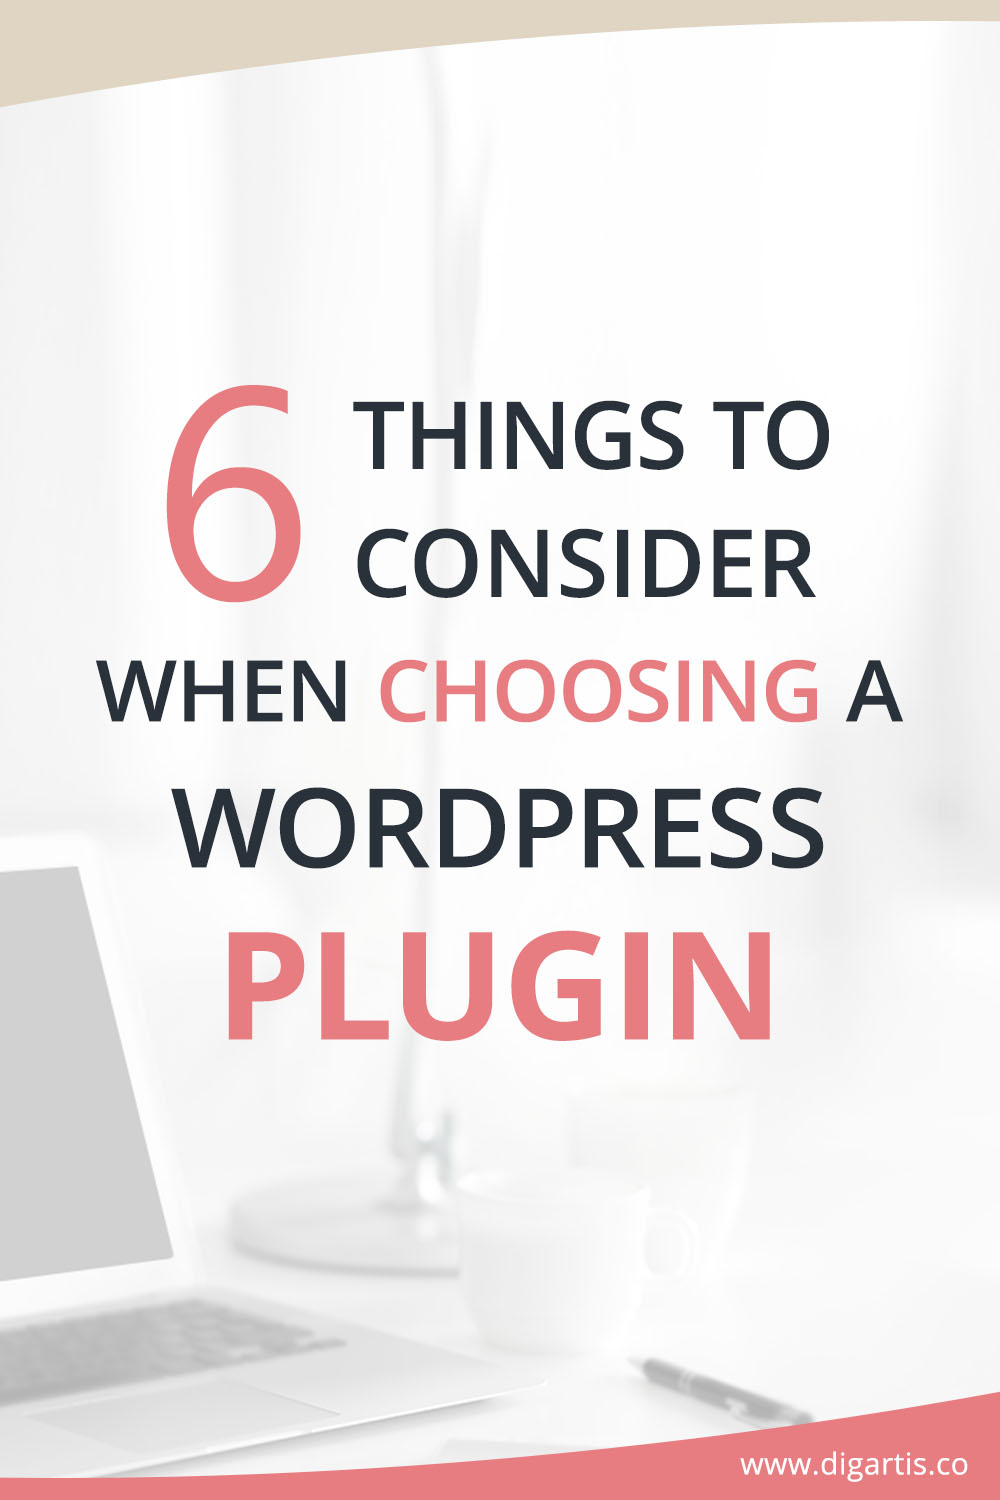 6 things to consider when choosing a WordPress plugin